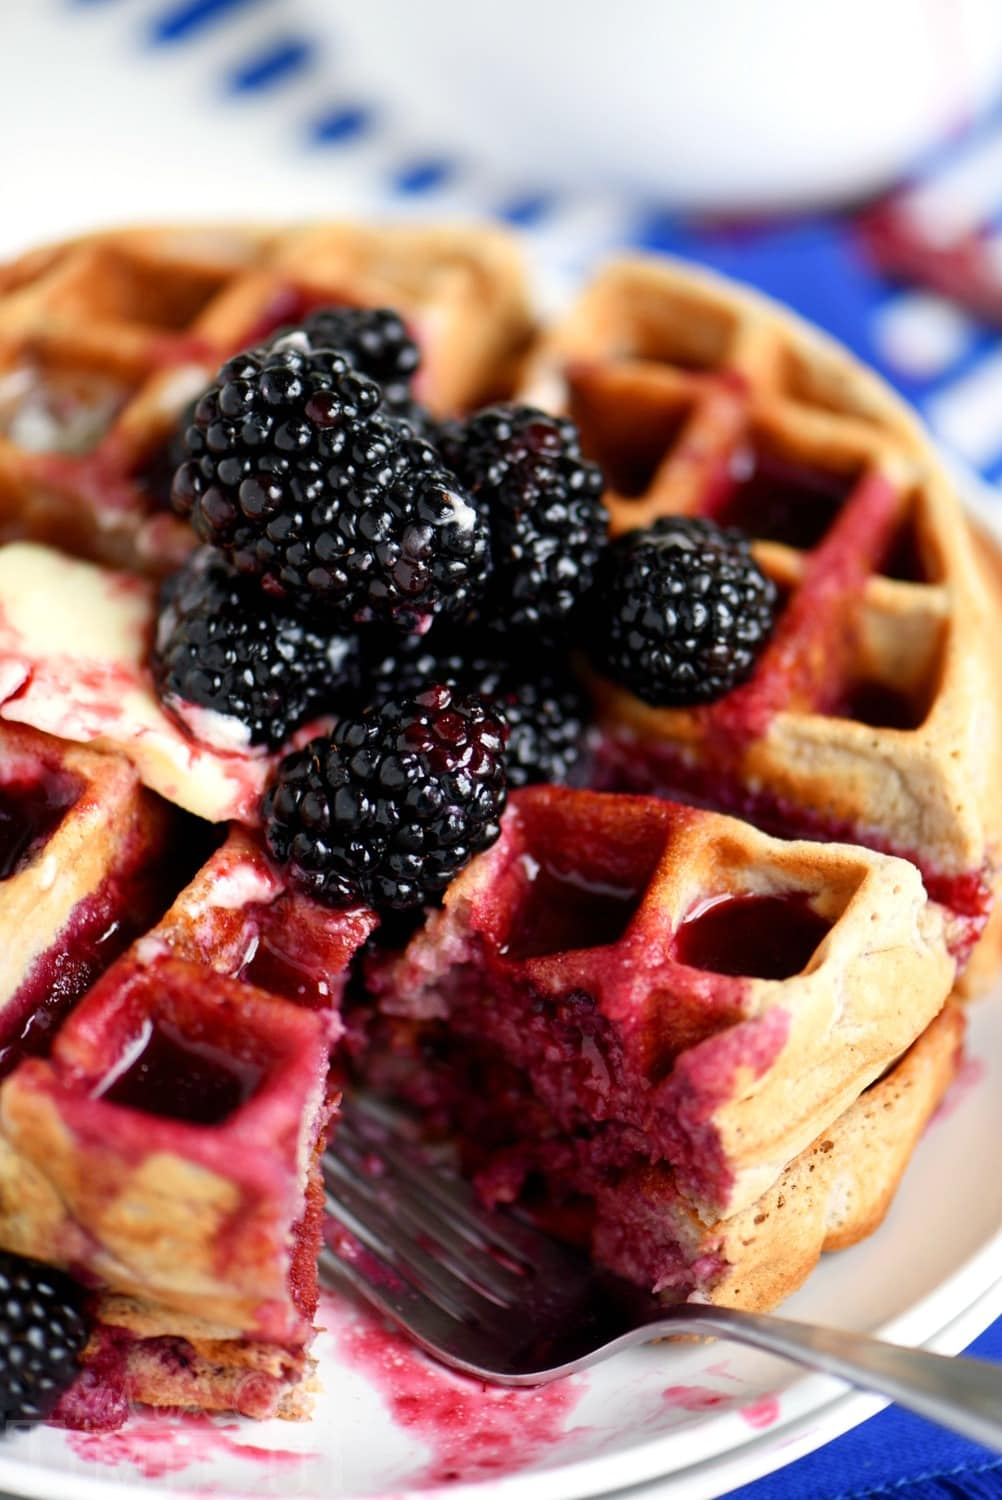 Better-for-you Overnight Blackberry Yeast Waffles with blackberry syrup - breakfast has never looked so good! Five minutes of work the night before delivers the most amazingly delicious waffles the next morning!